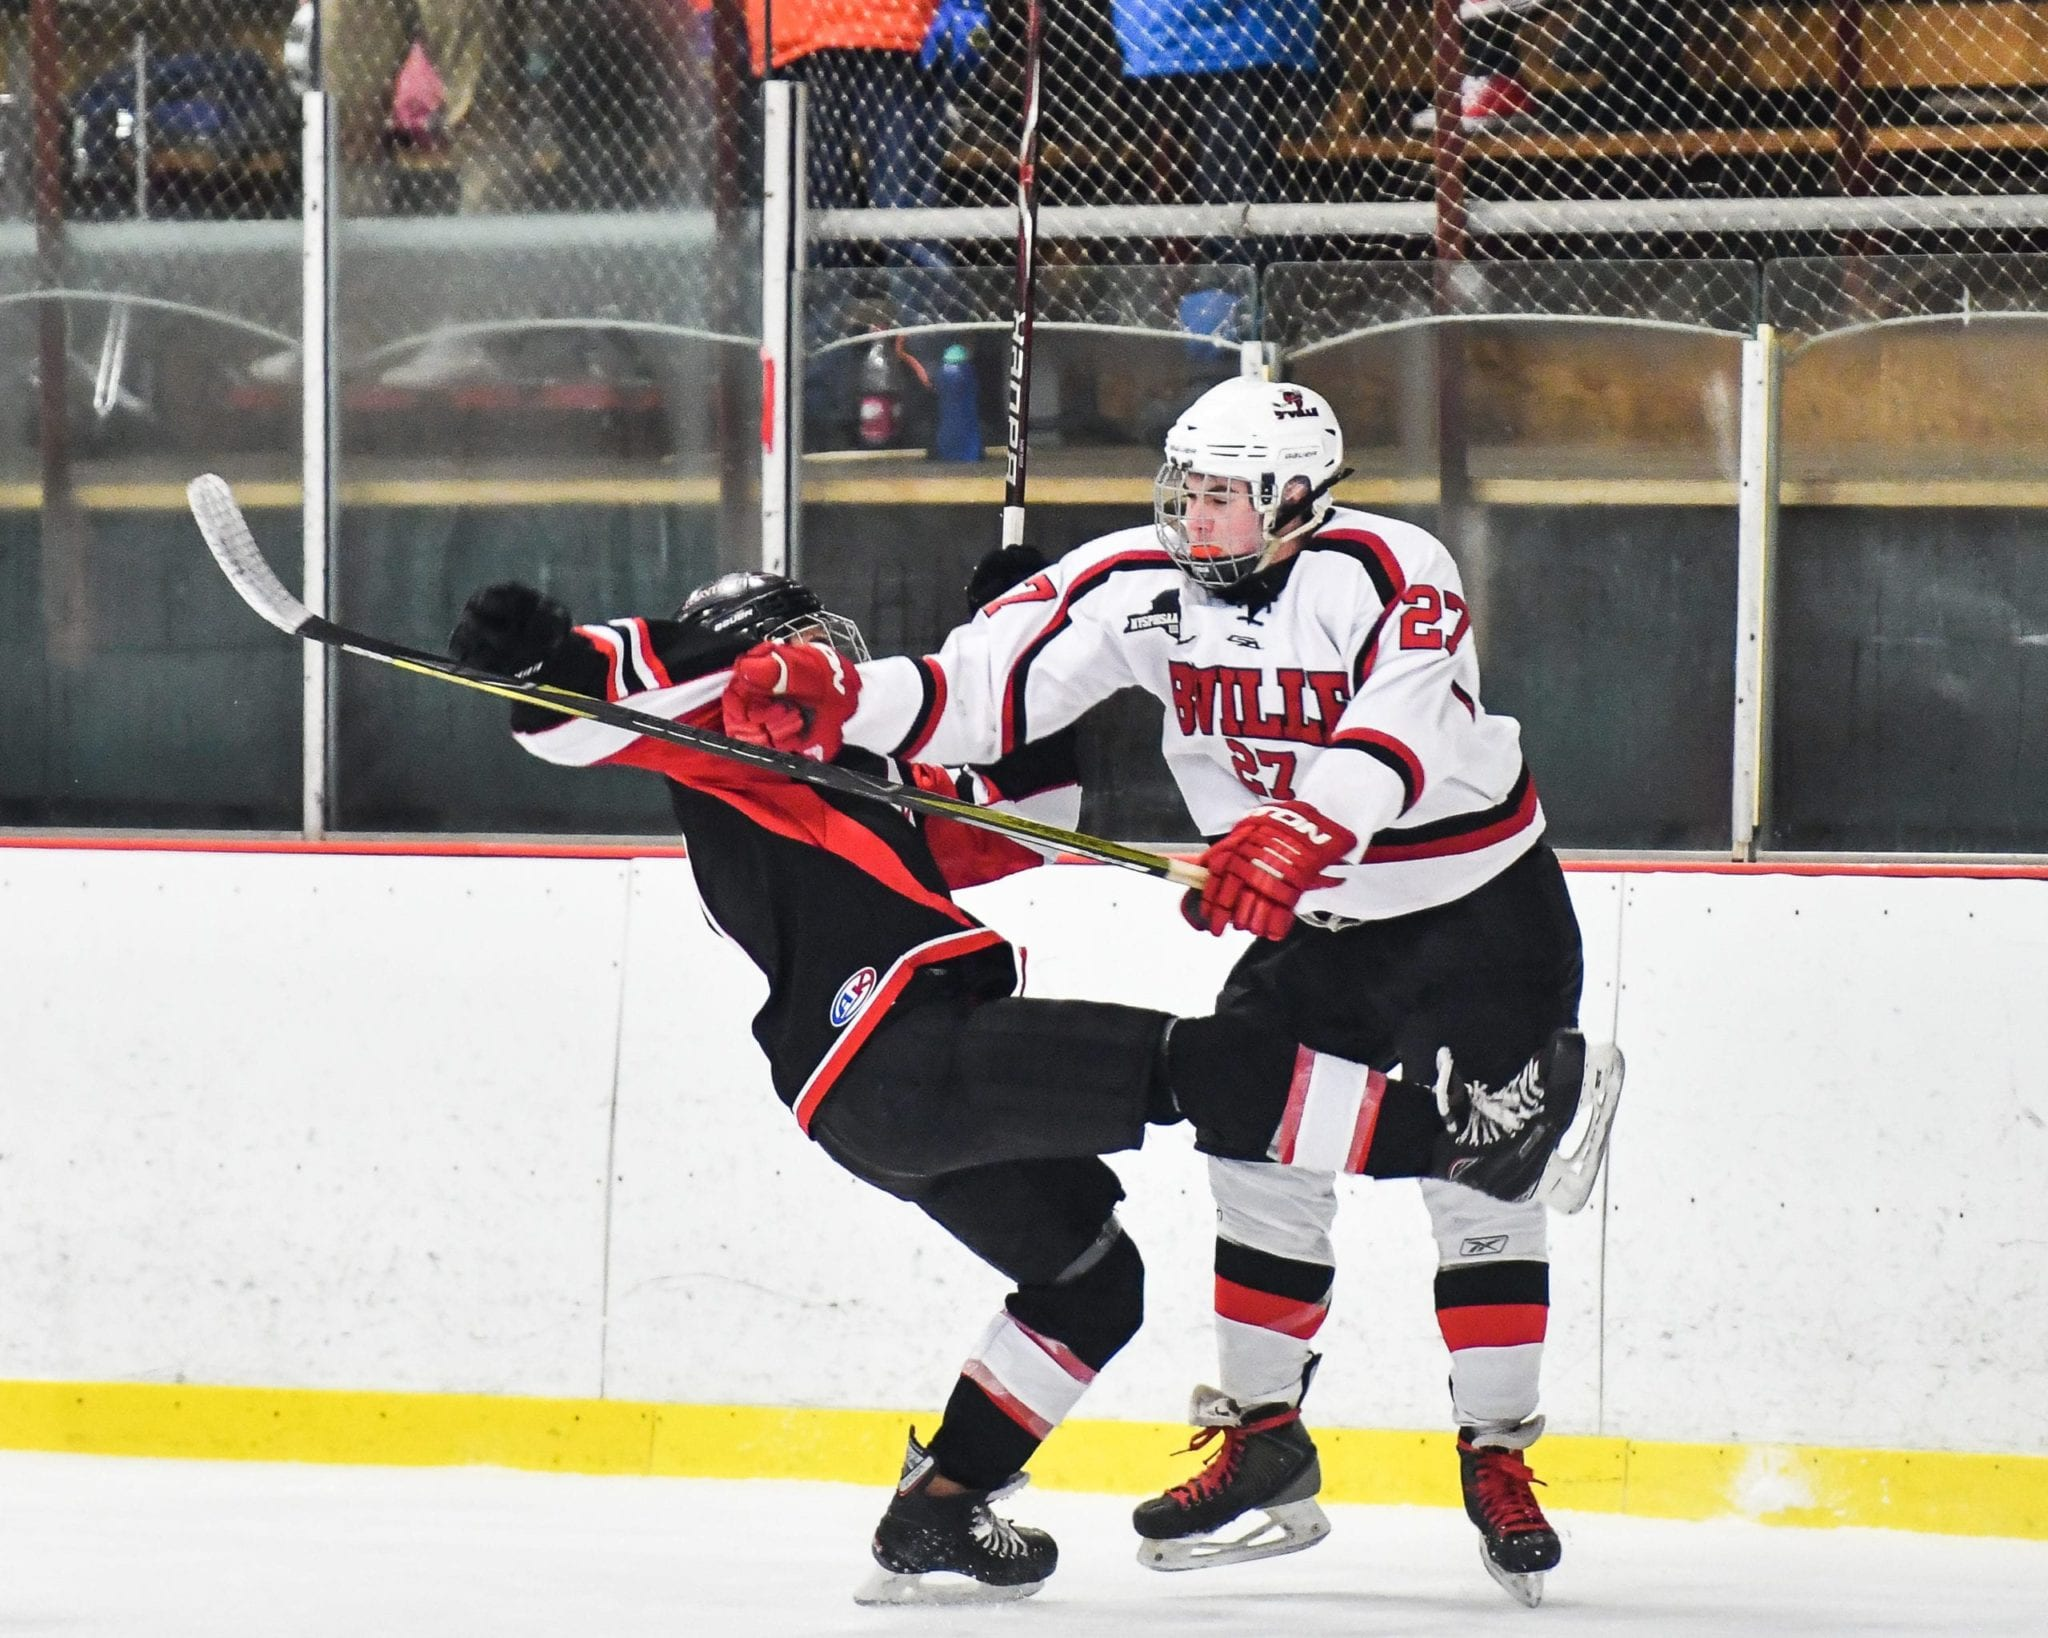 B'ville hockey hangs on for playoff win over Mohawk Valley